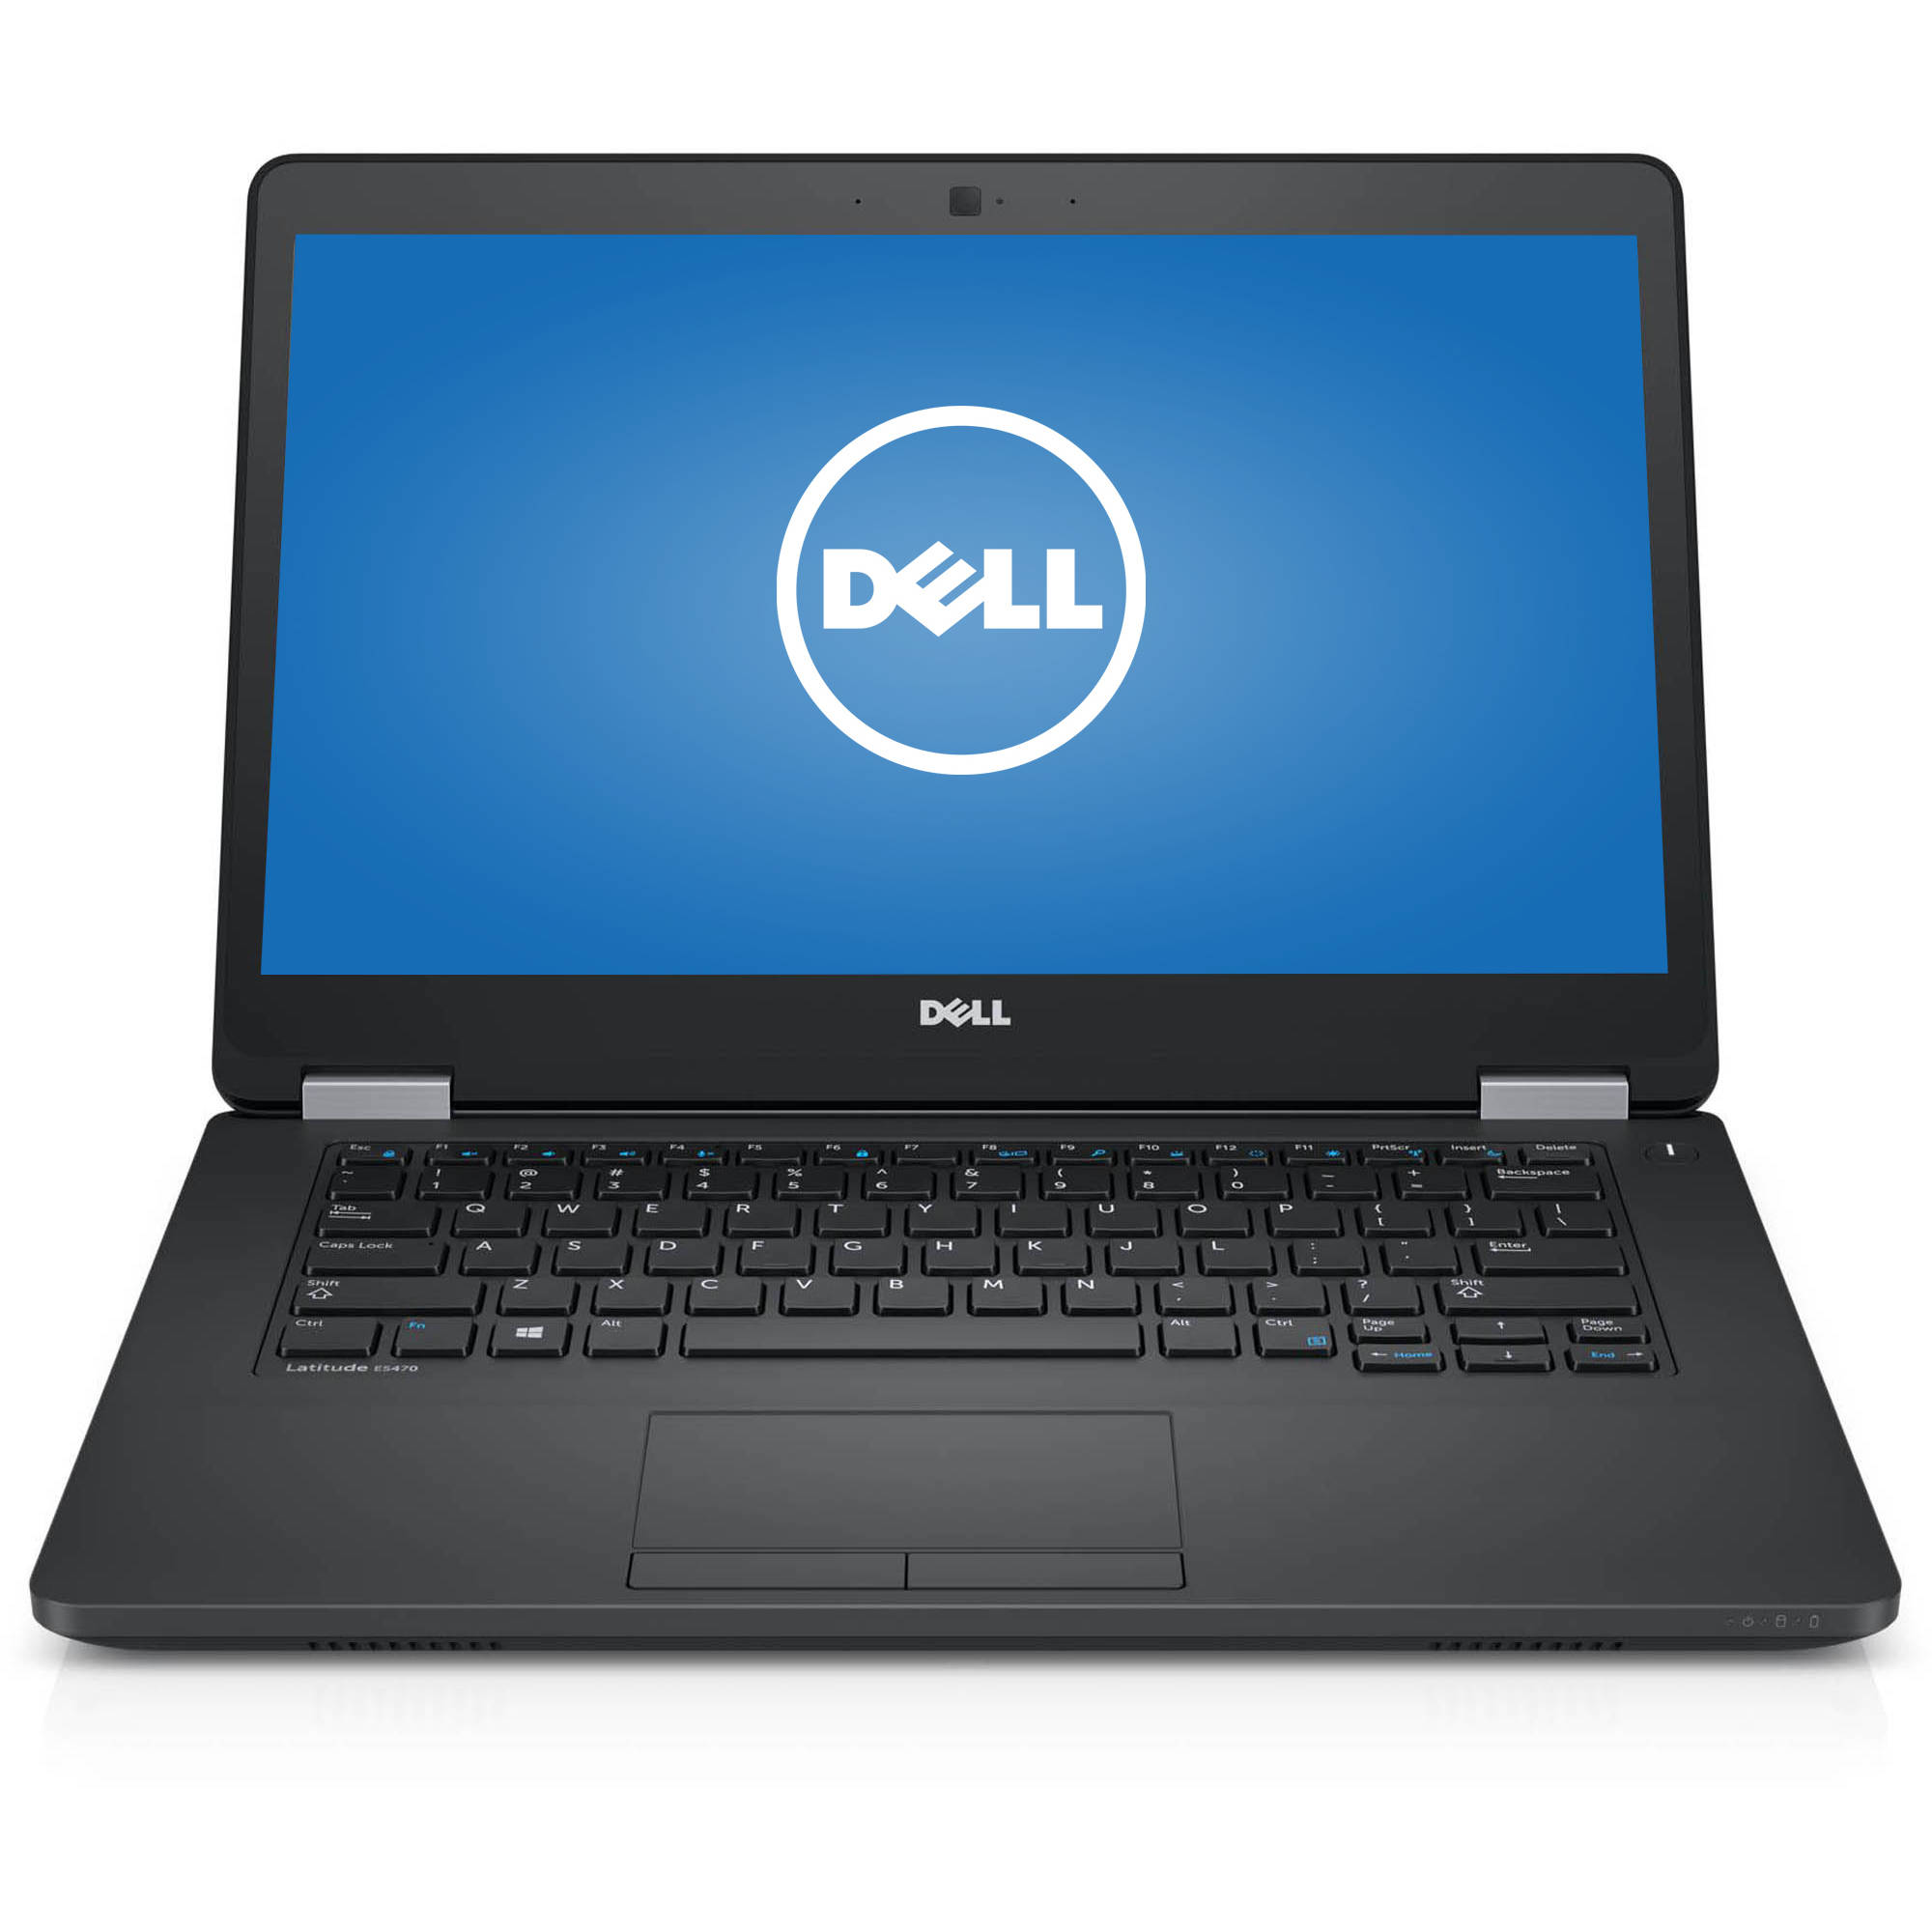 "Dell Latitude 14"" Laptop, Windows 10 Pro, Intel Core i5-6300U Processor, 8GB RAM, 256GB Solid State Drive"